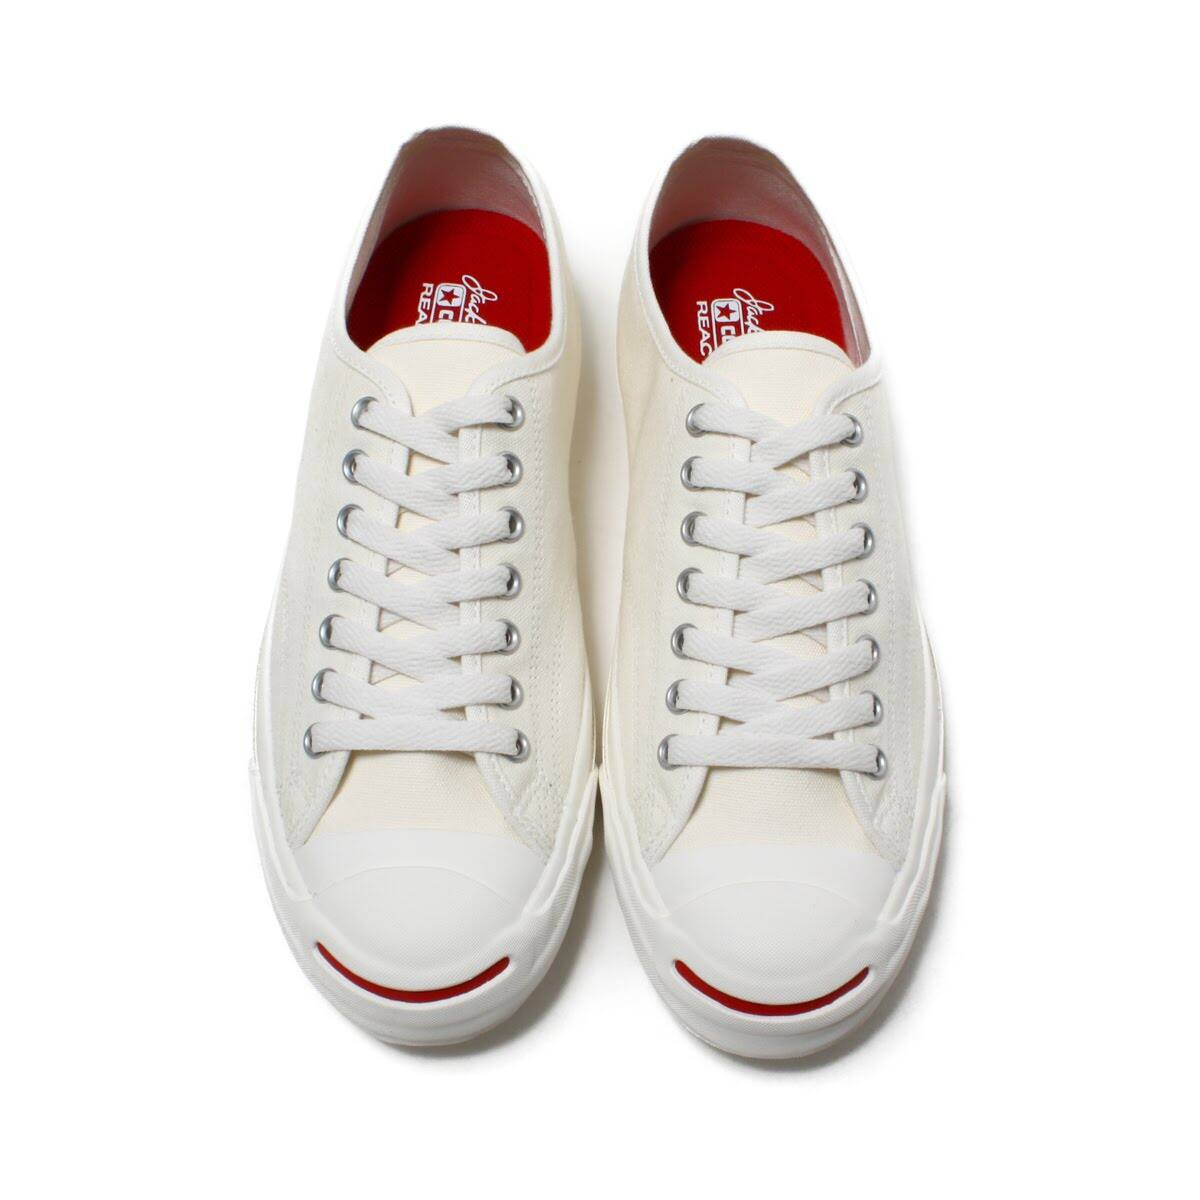 converse jack purcell wr canvas r - 54